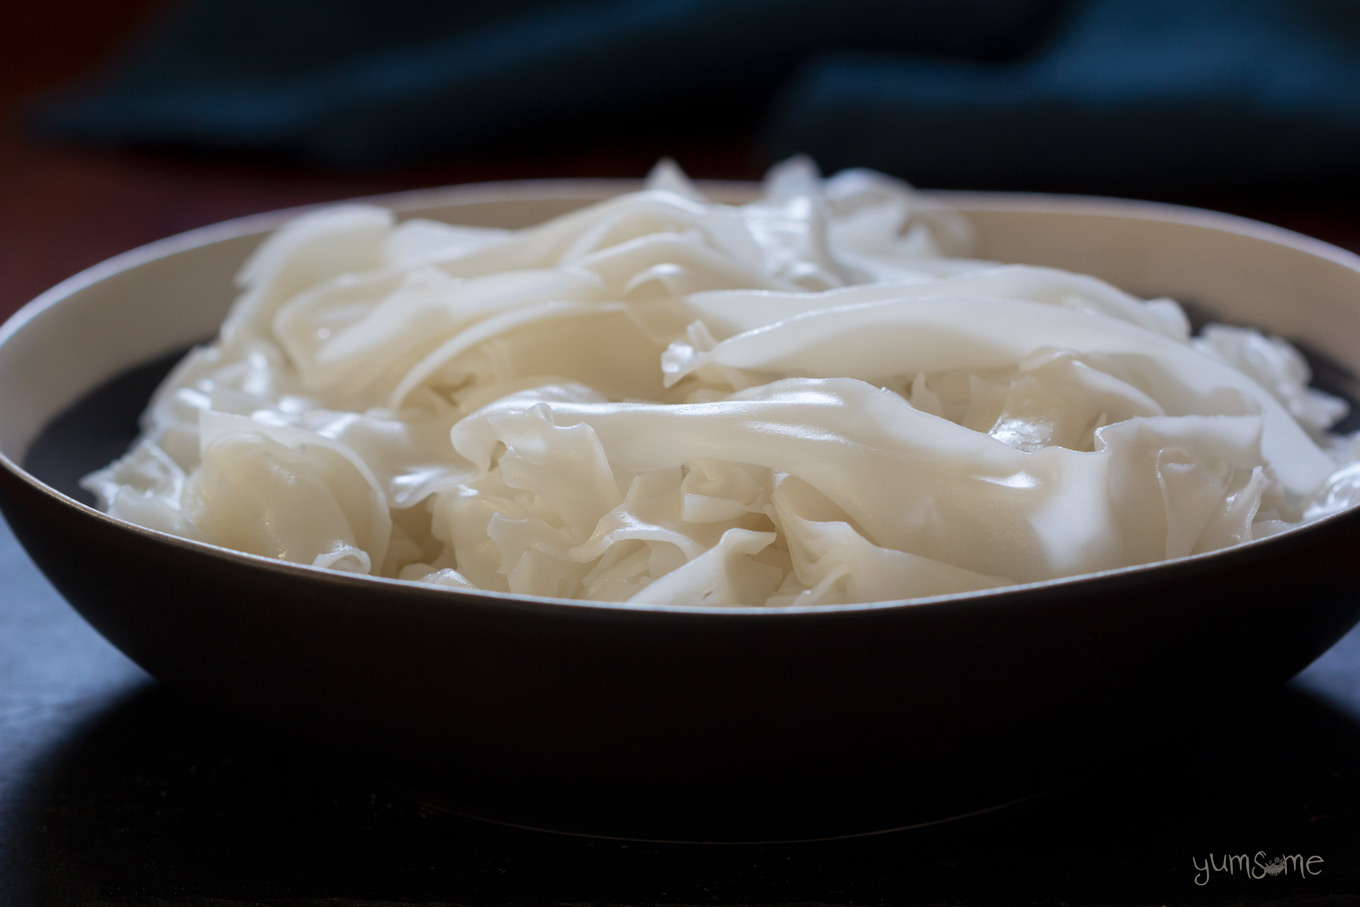 A black dish of cooked sen yai rice noodles.